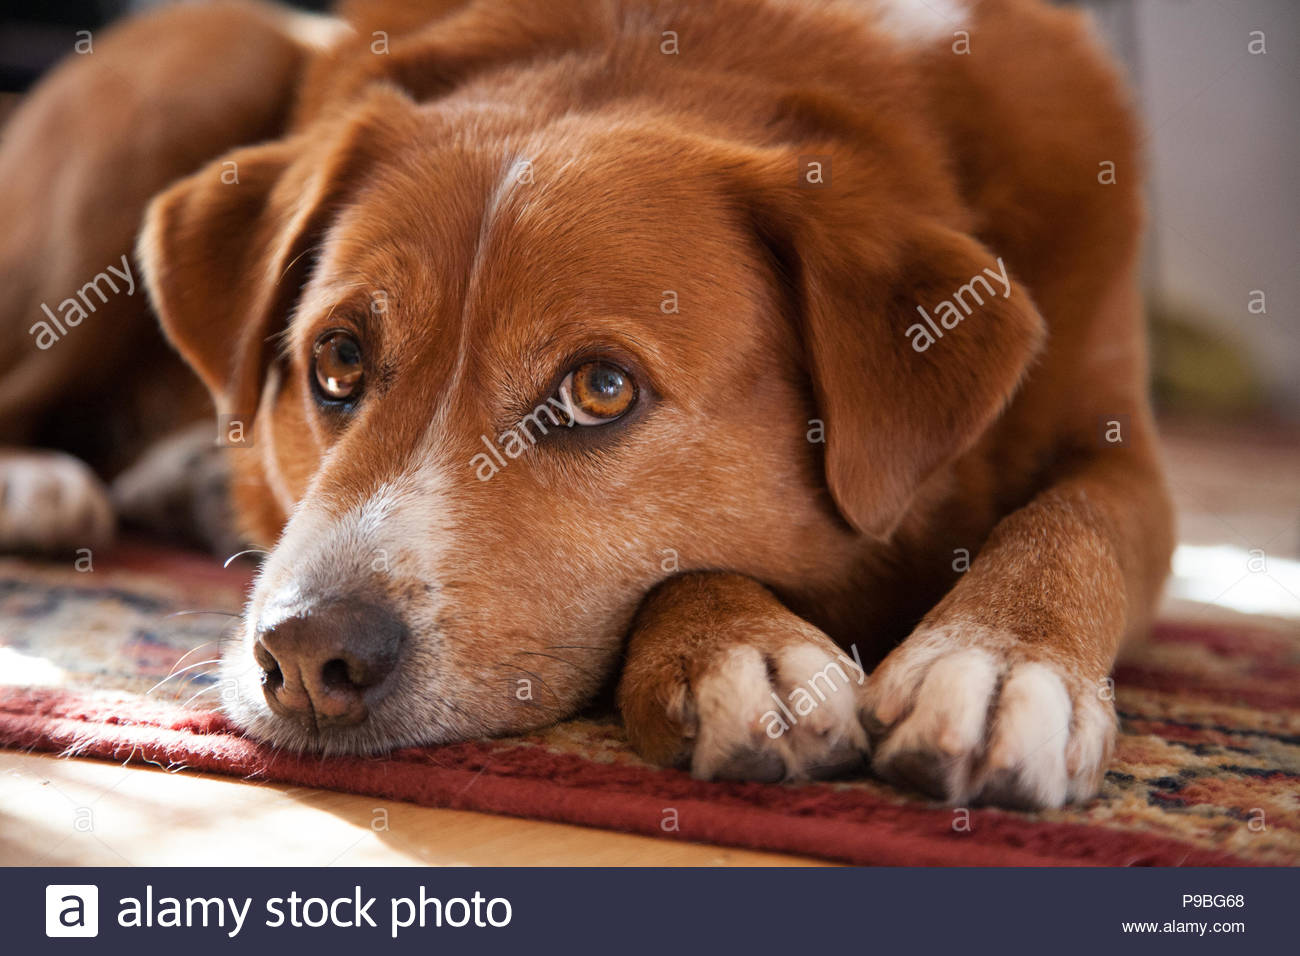 Close-up of sad looking brown-eyed hound mix dog lying on red carpet and resting head on paws - Stock Image